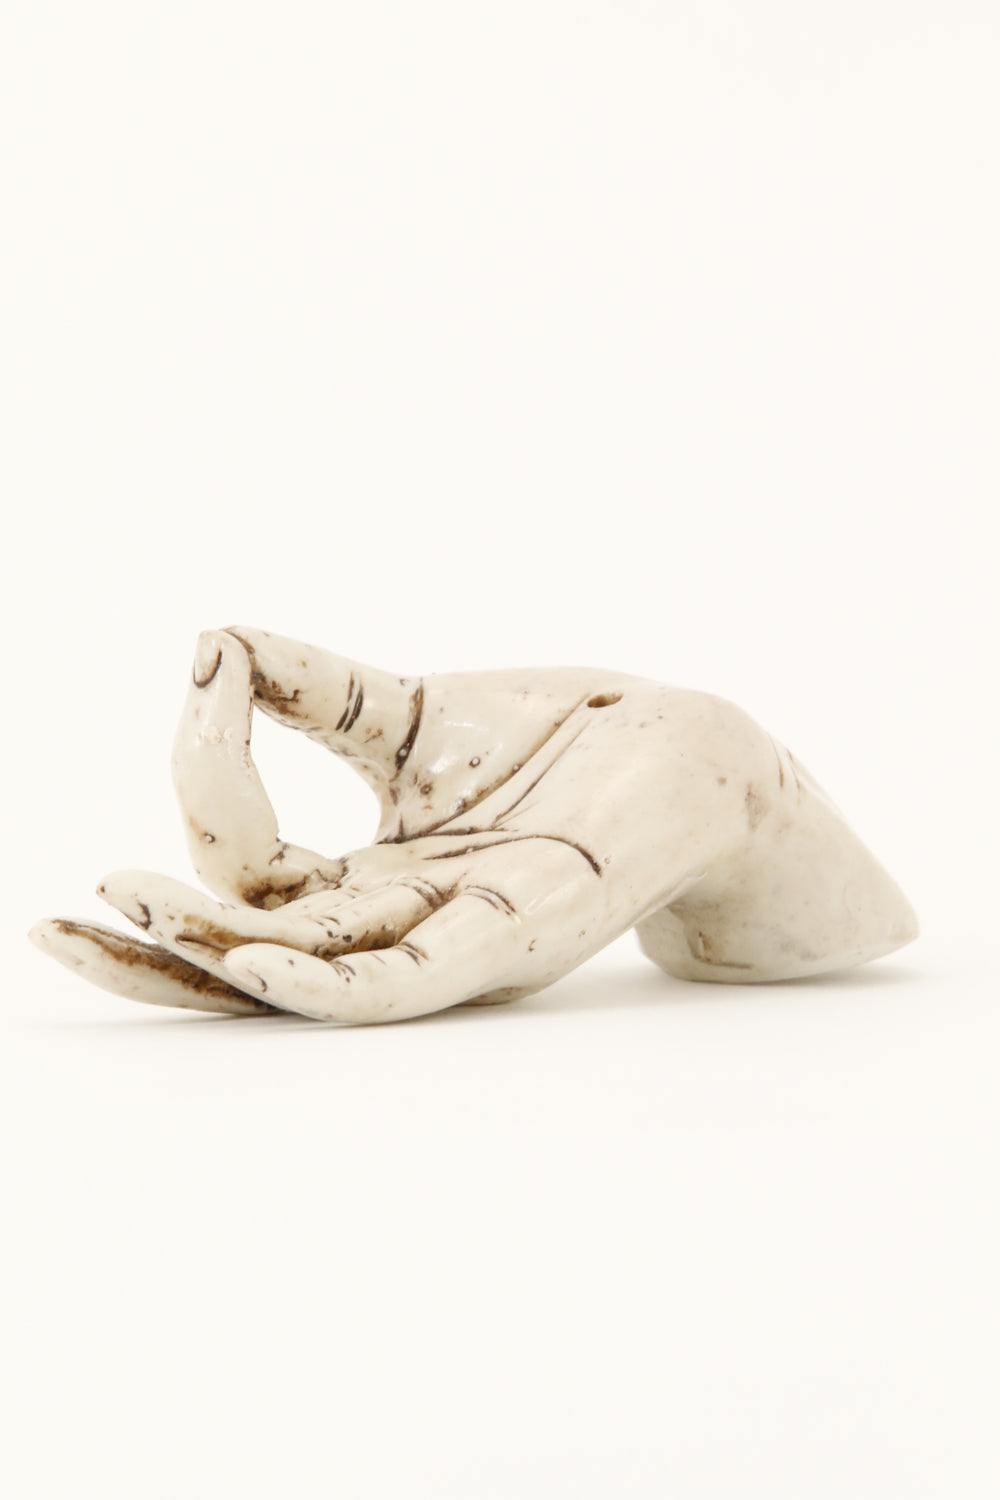 MUDRA HAND INCENSE BURNER OFF-WHITE SIDE VIEW